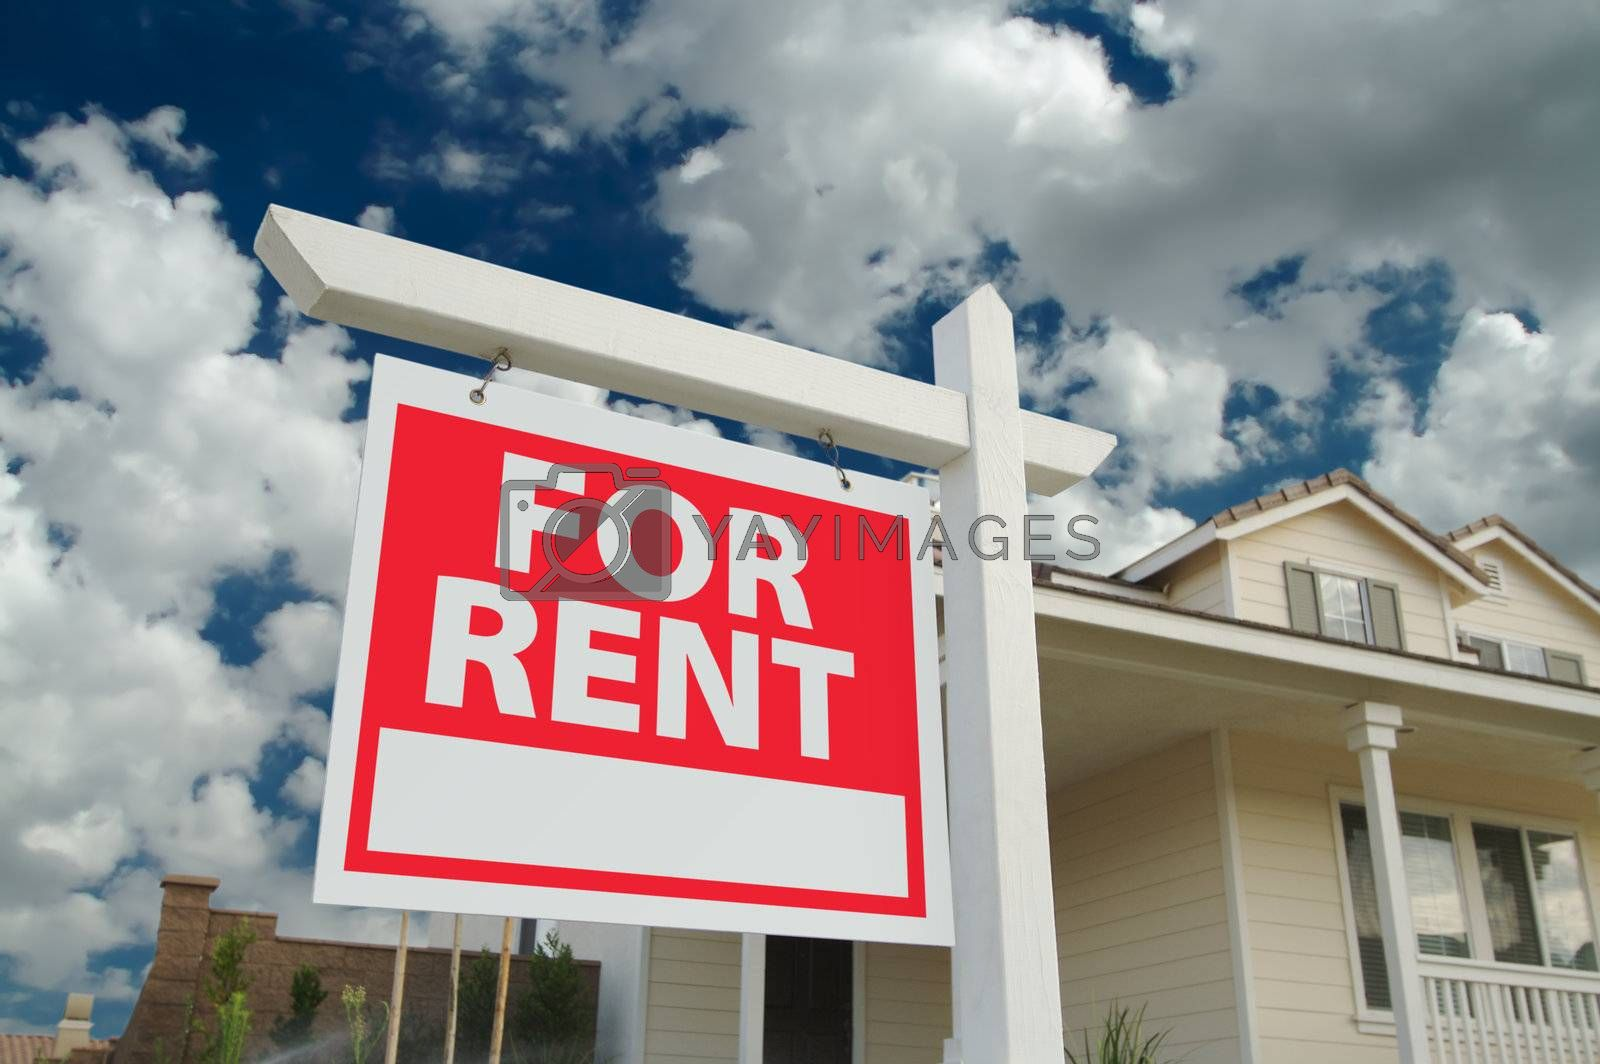 For Rent sign in front of new home with dramatic Blue Sky and clouds behind.